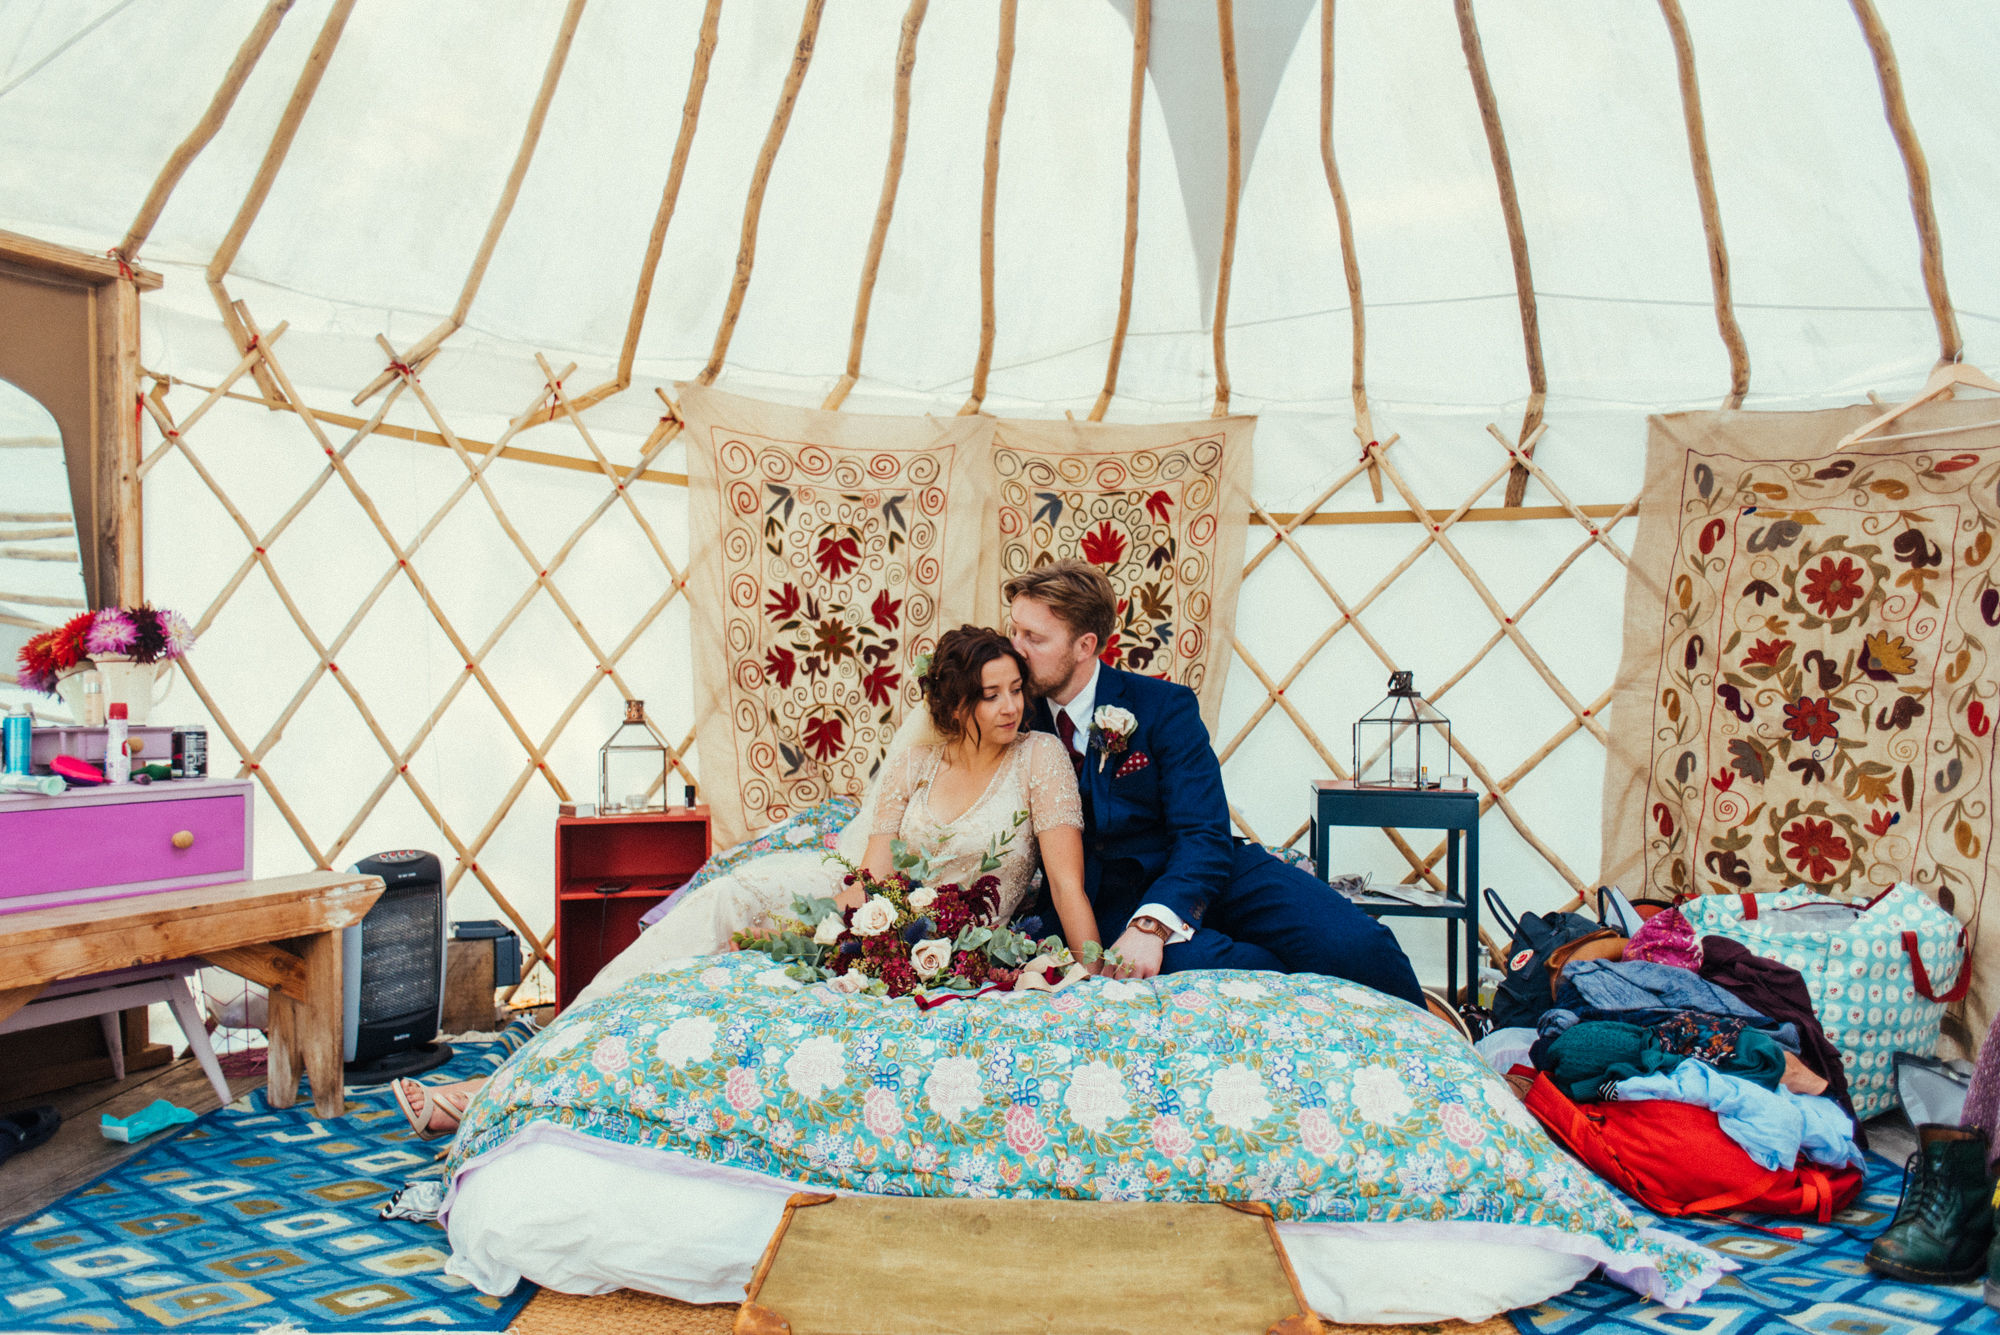 55-quirky-couple-portrait-in-yurt